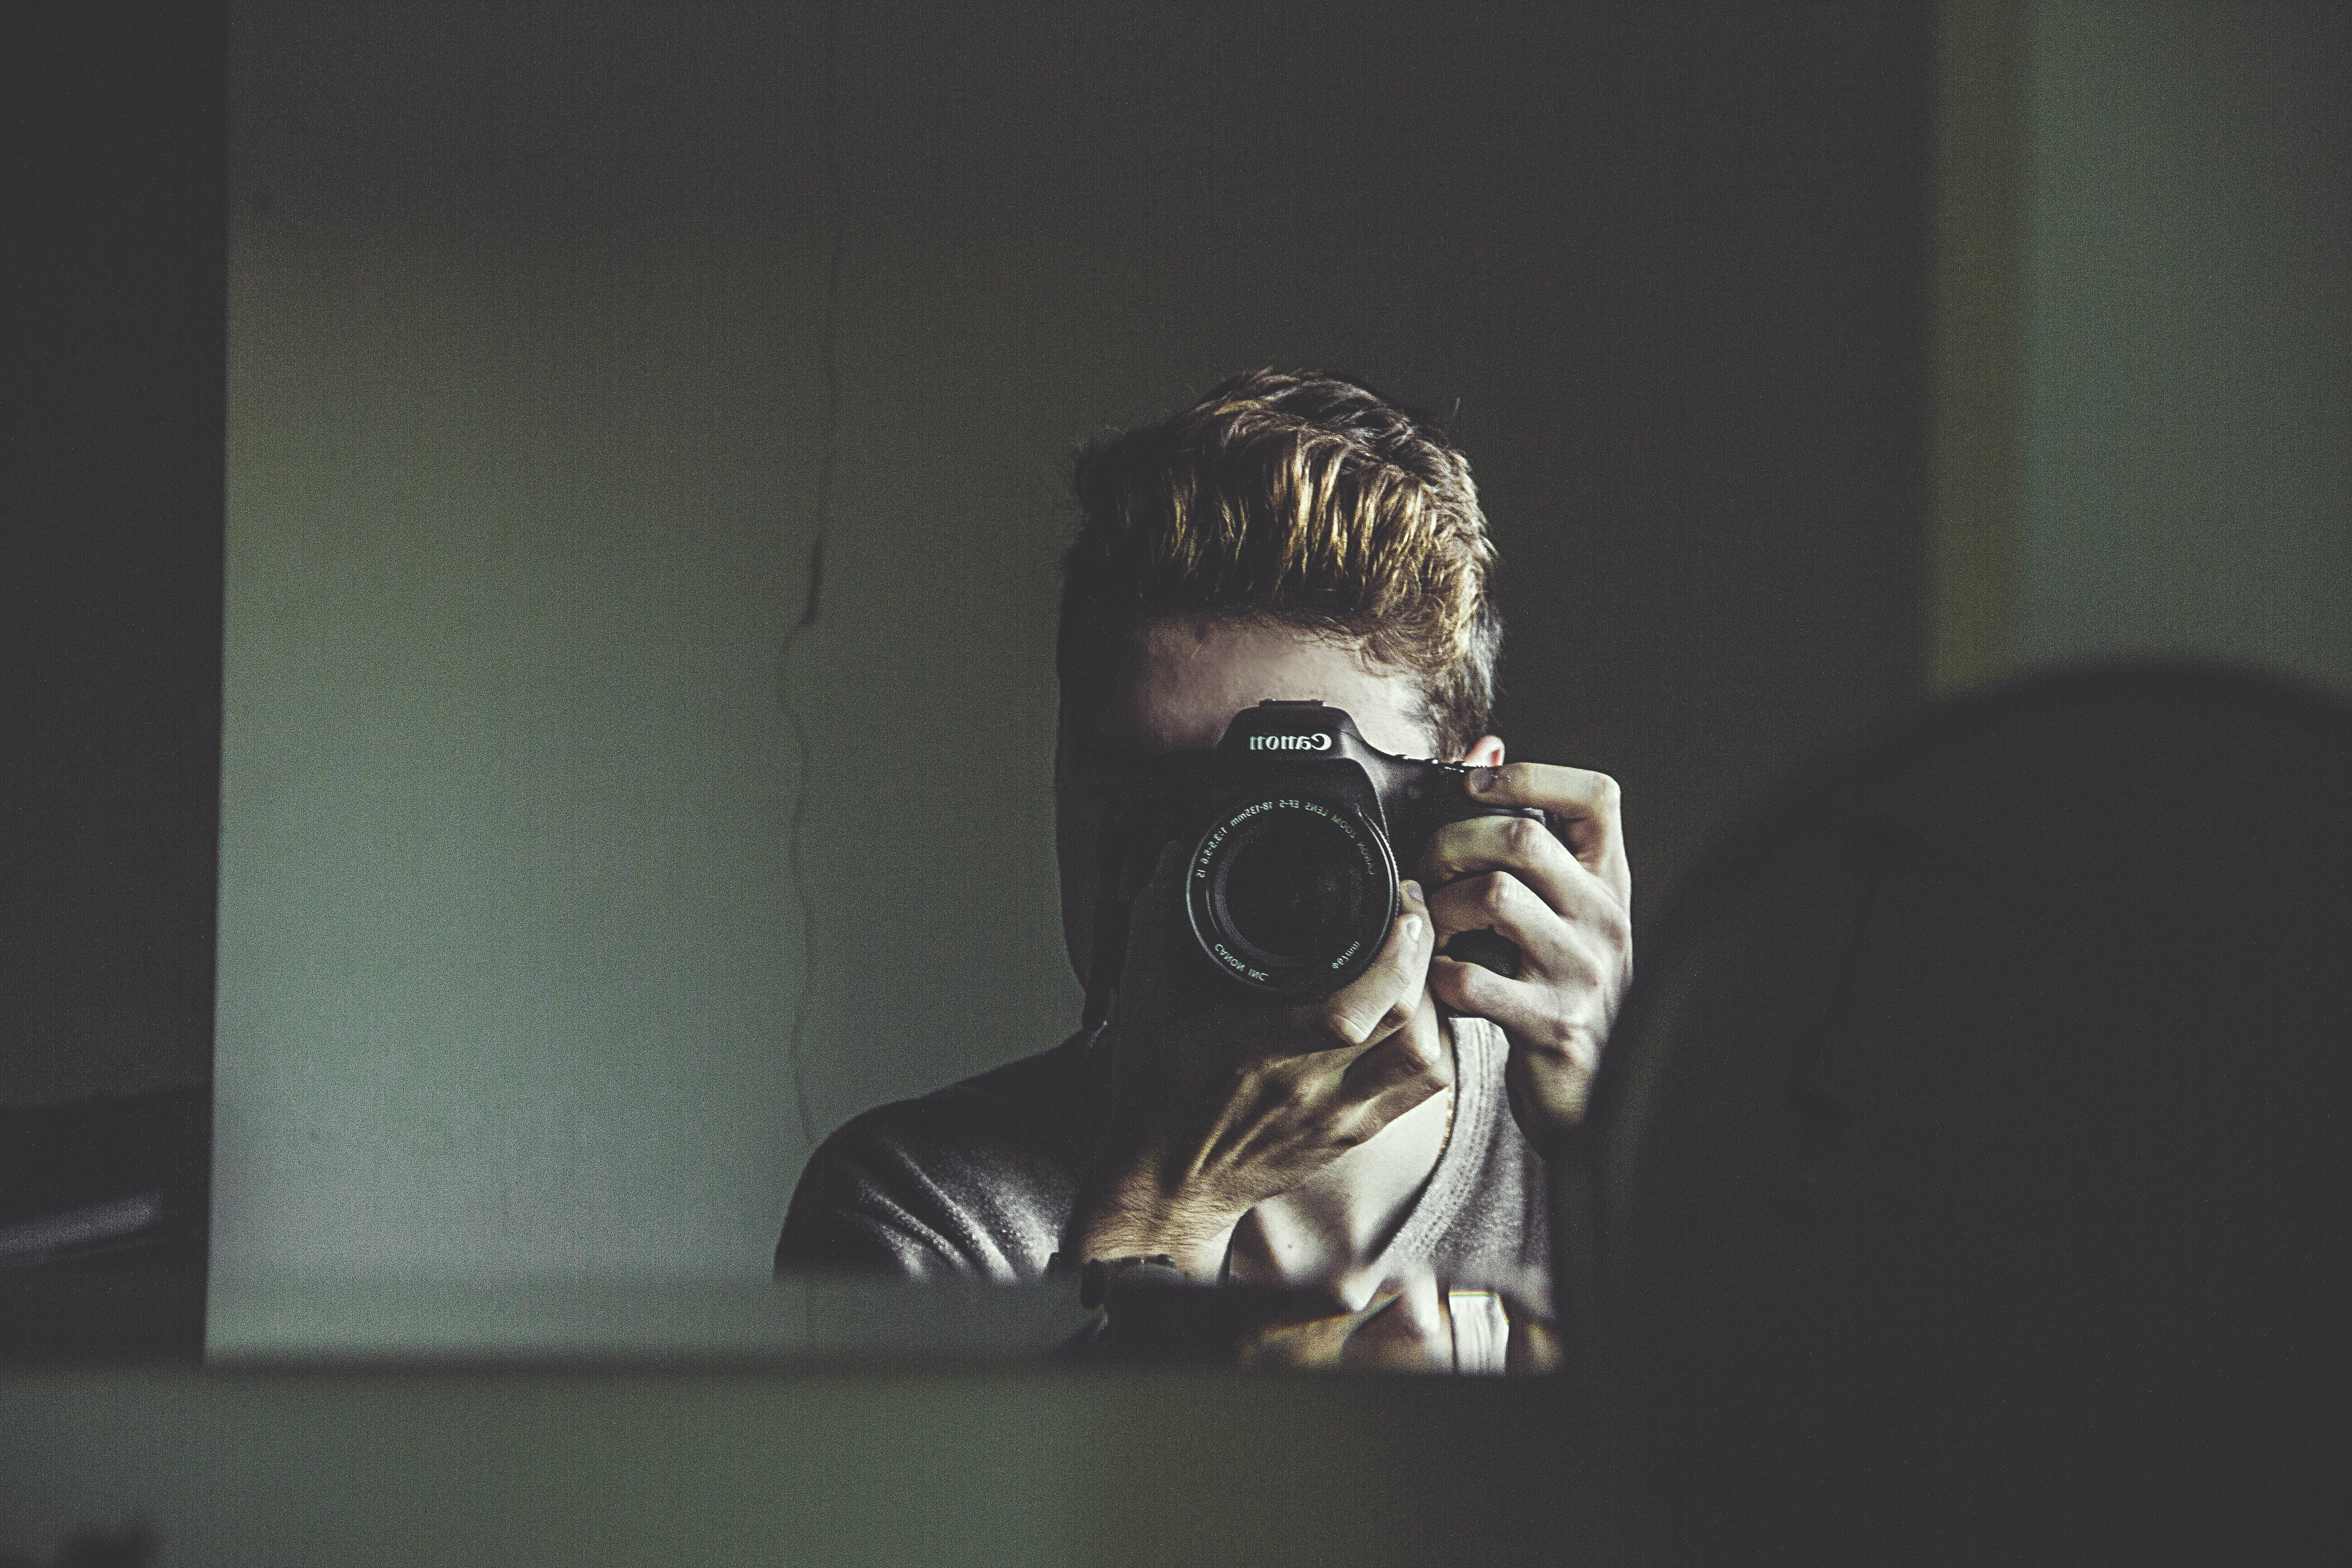 man taking photo on mirror